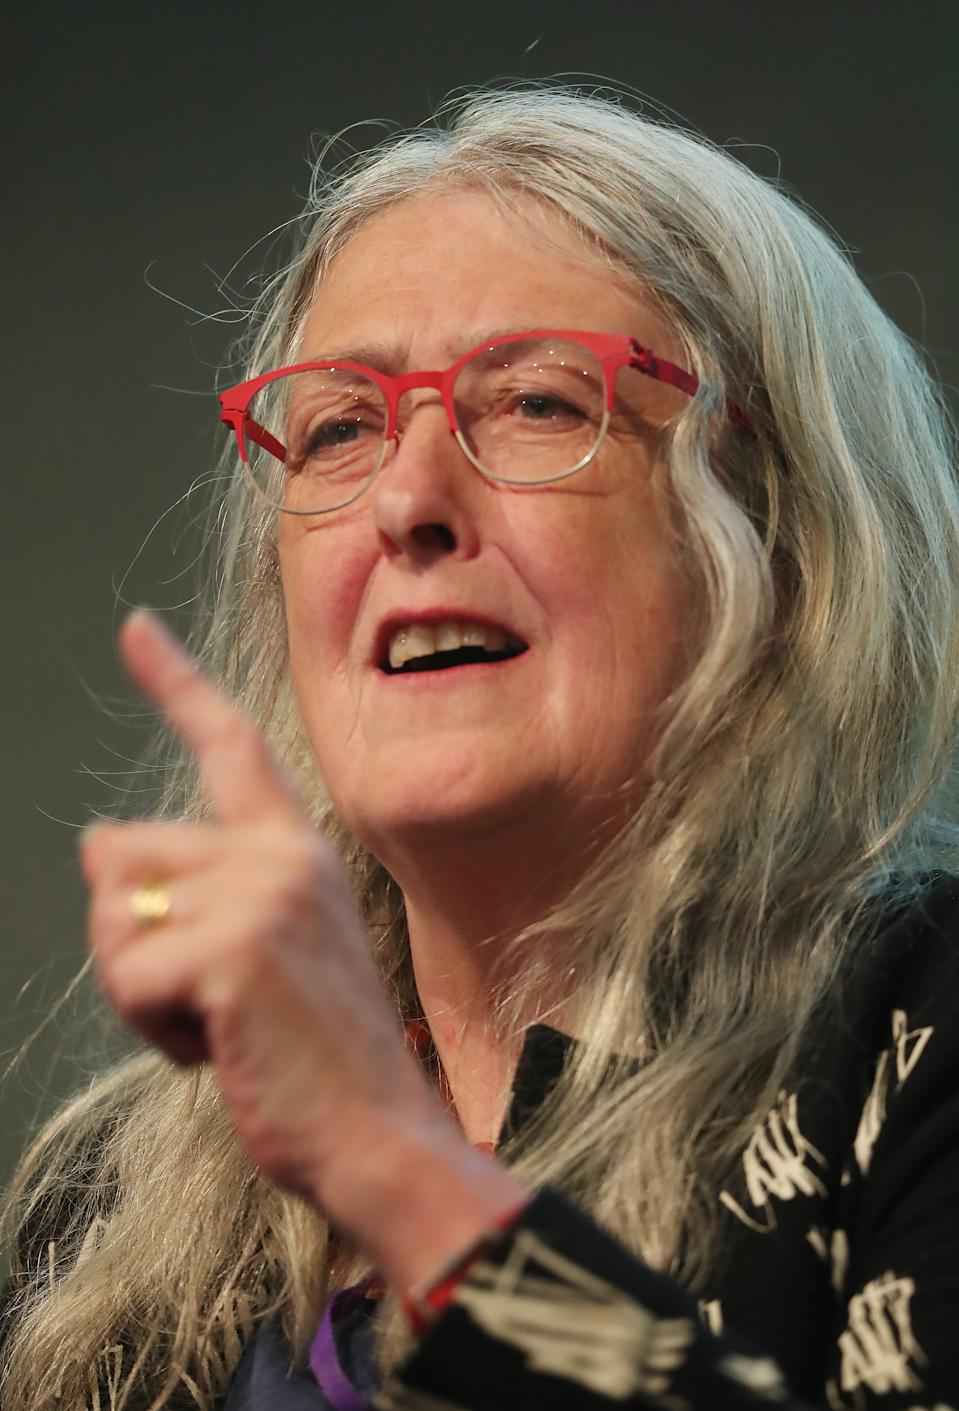 Professor Mary Beard at the International Congress of Parliamentary Women's Caucuses at Dublin castle today. (Photo by Niall Carson/PA Images via Getty Images)